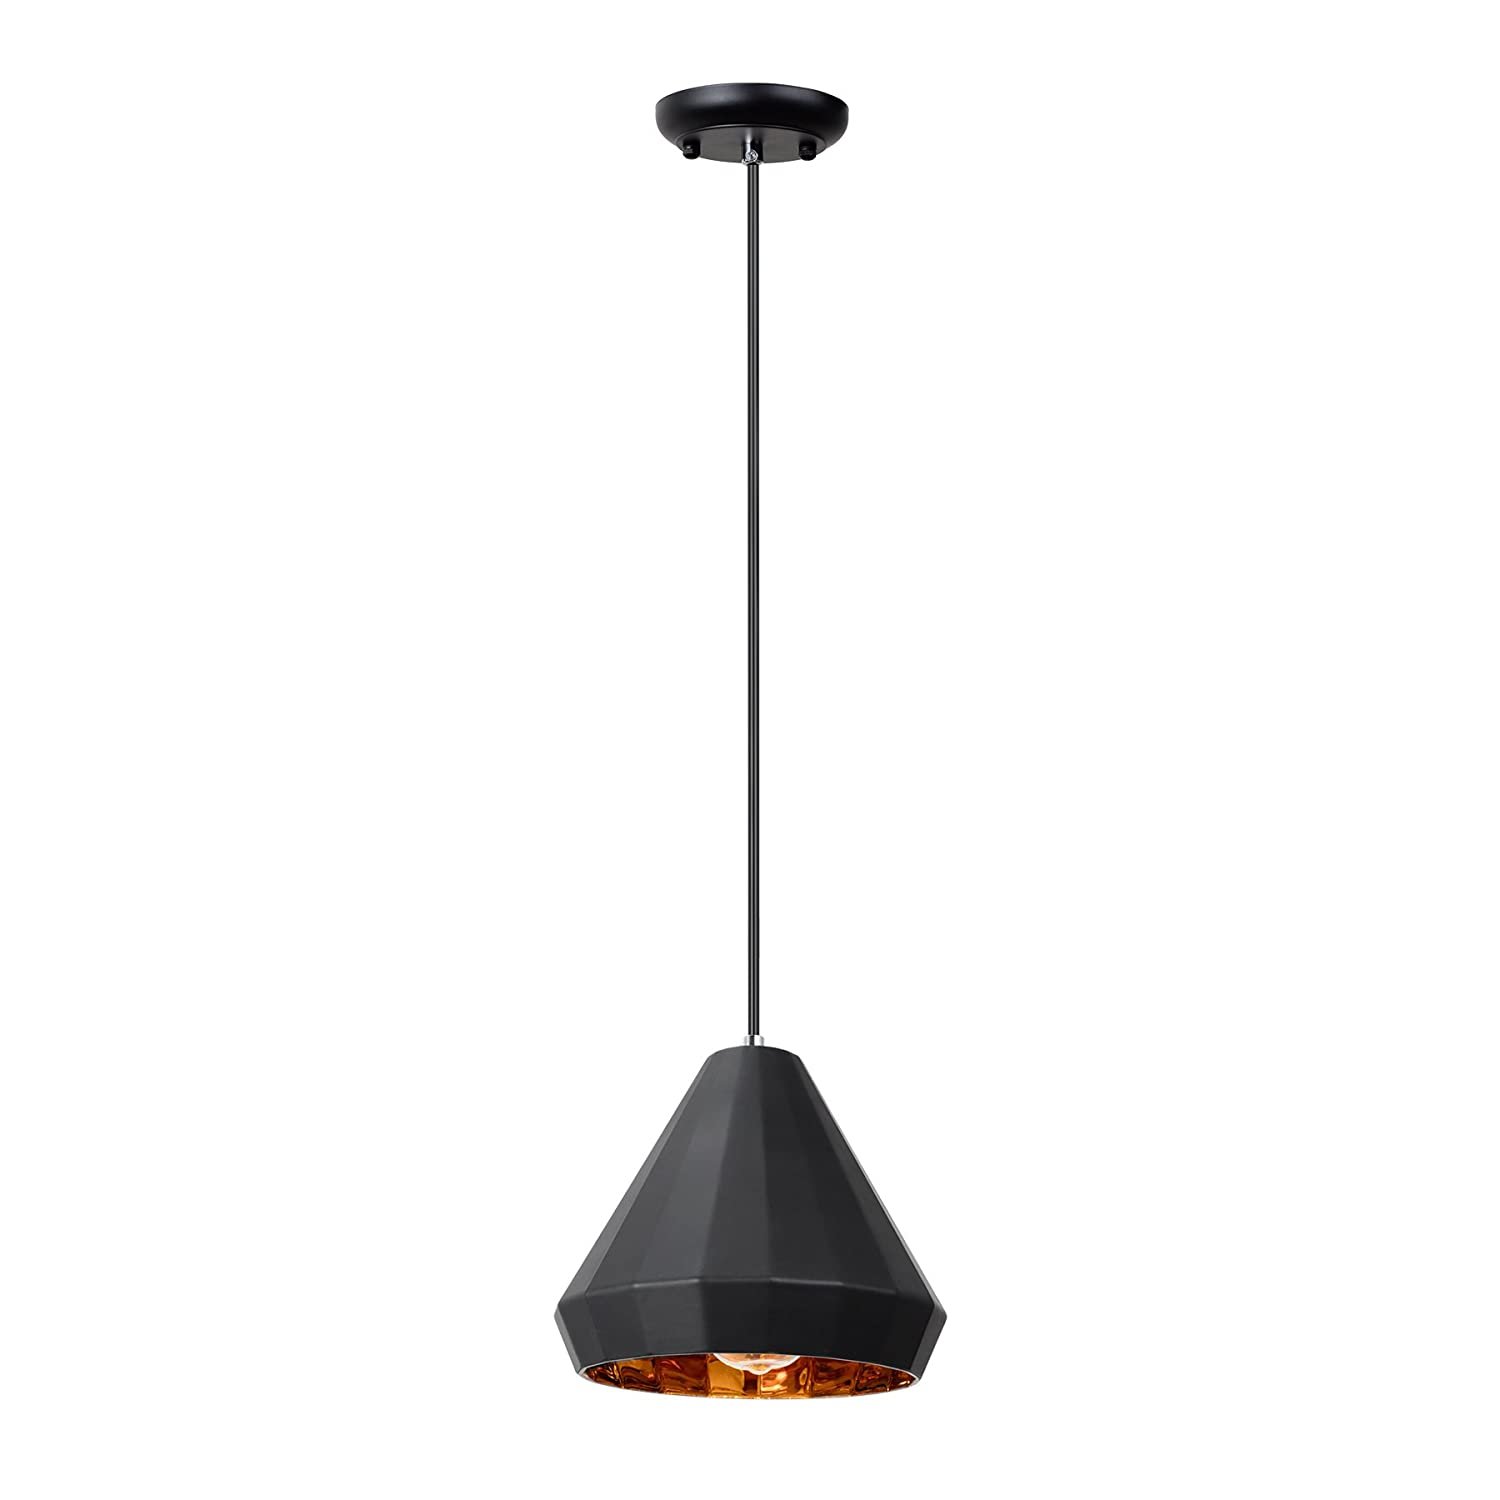 Maykke alta mesa pendant light modern geometric diamond painted